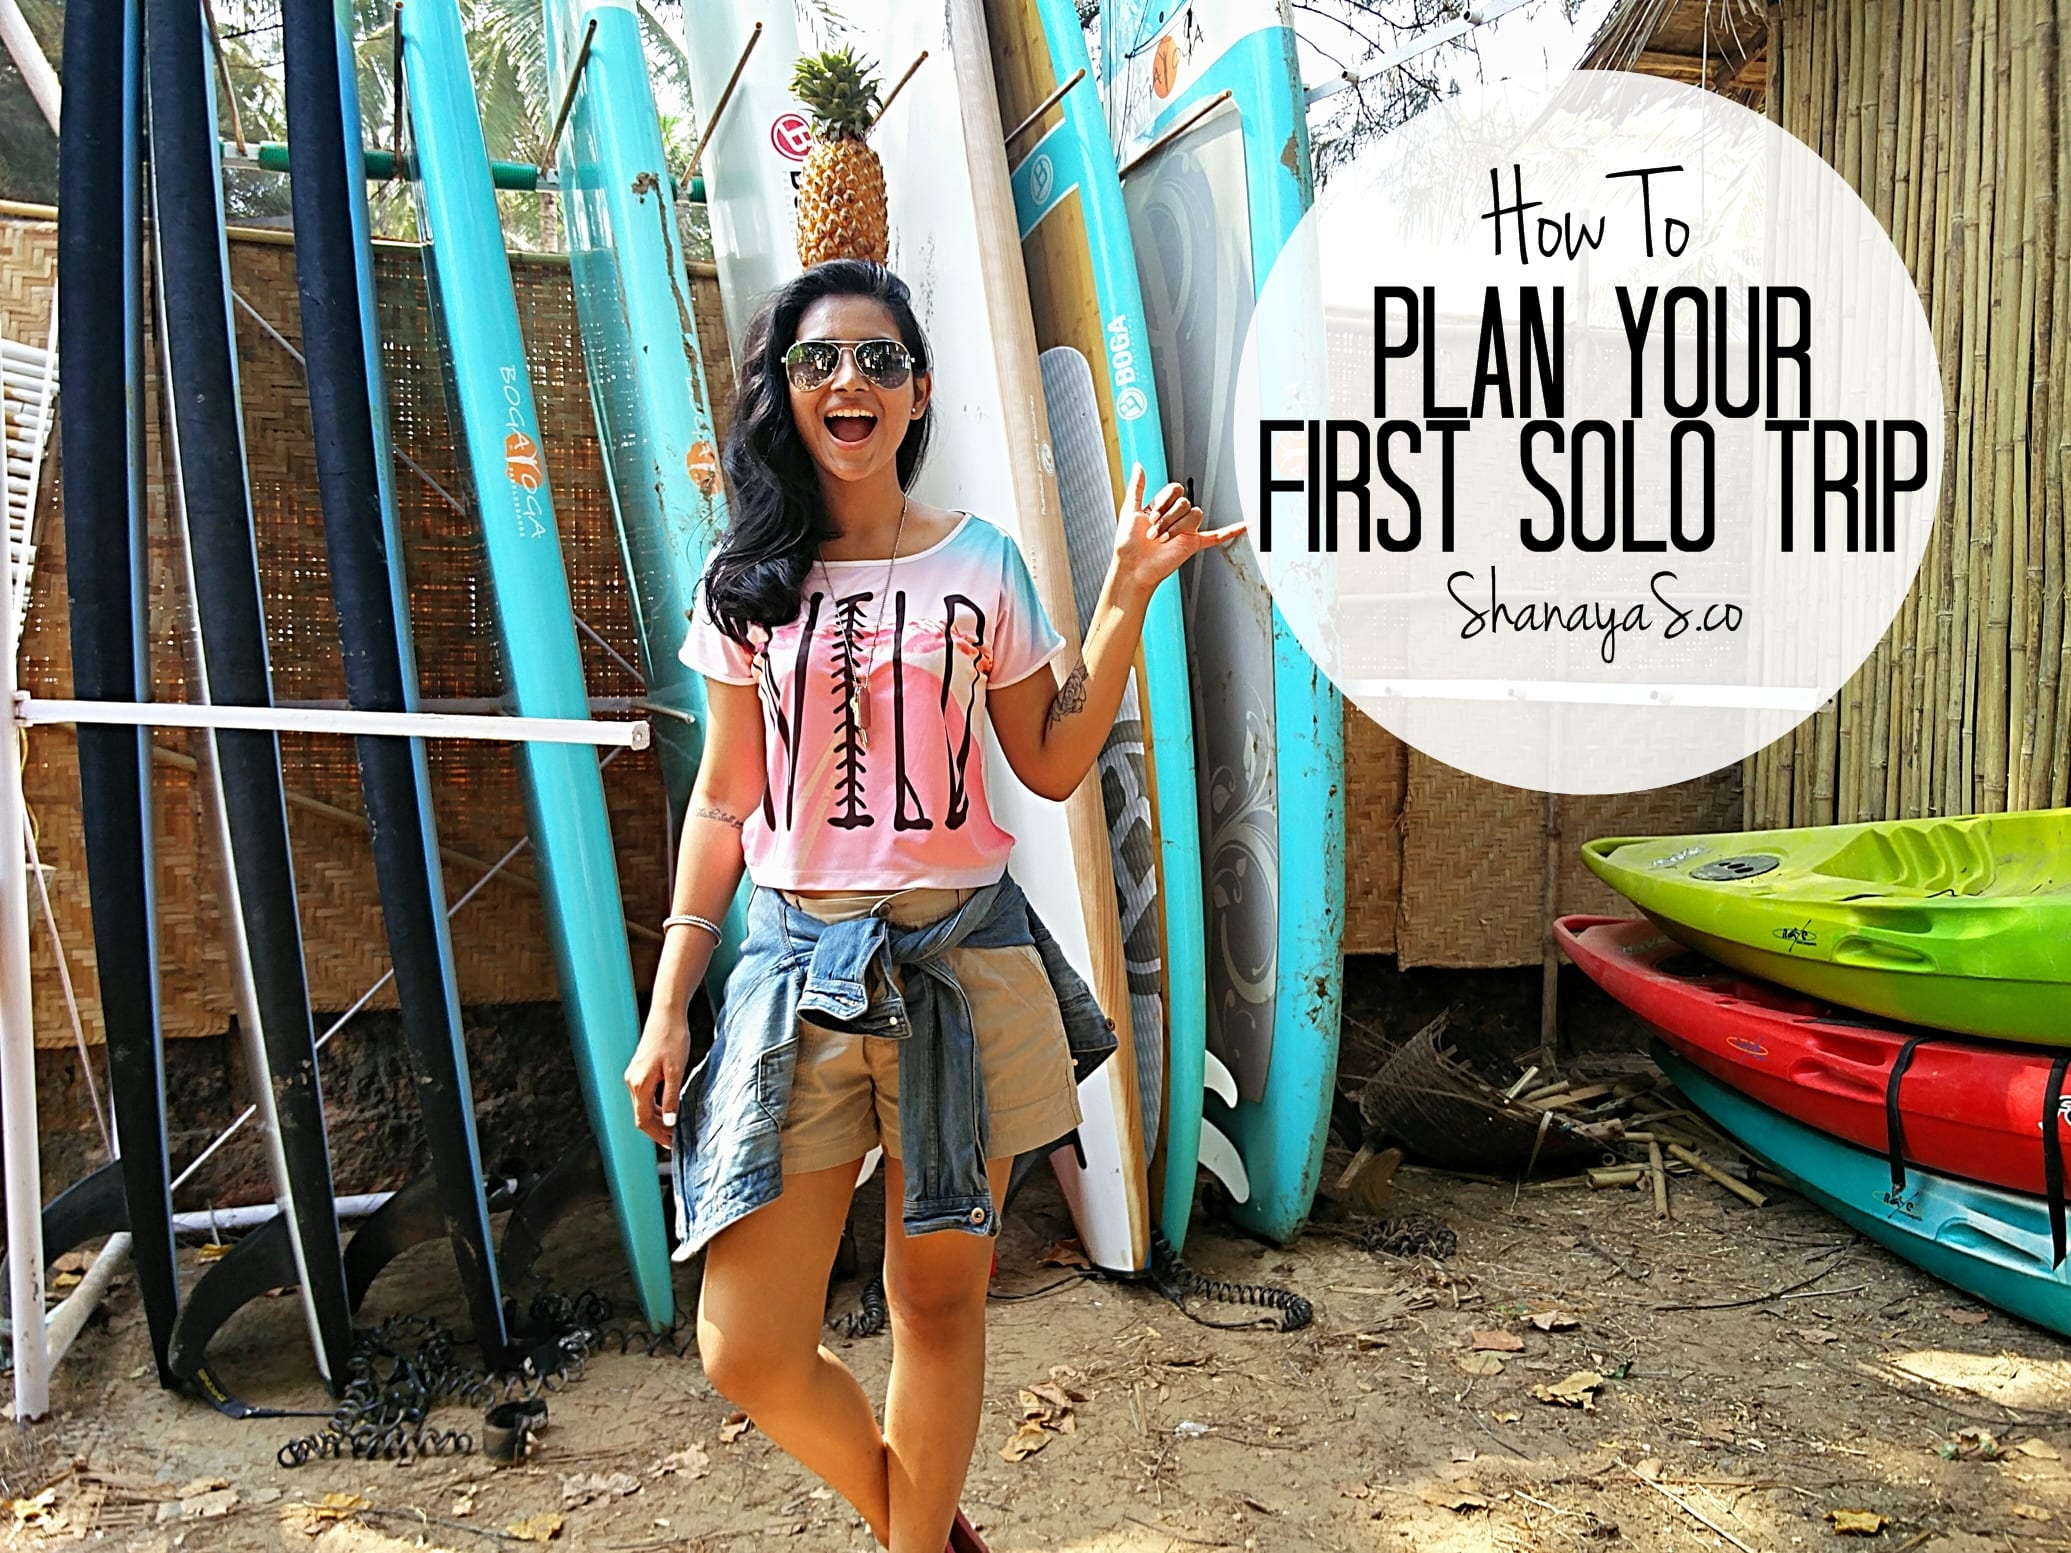 How To Plan Your First Solo Trip